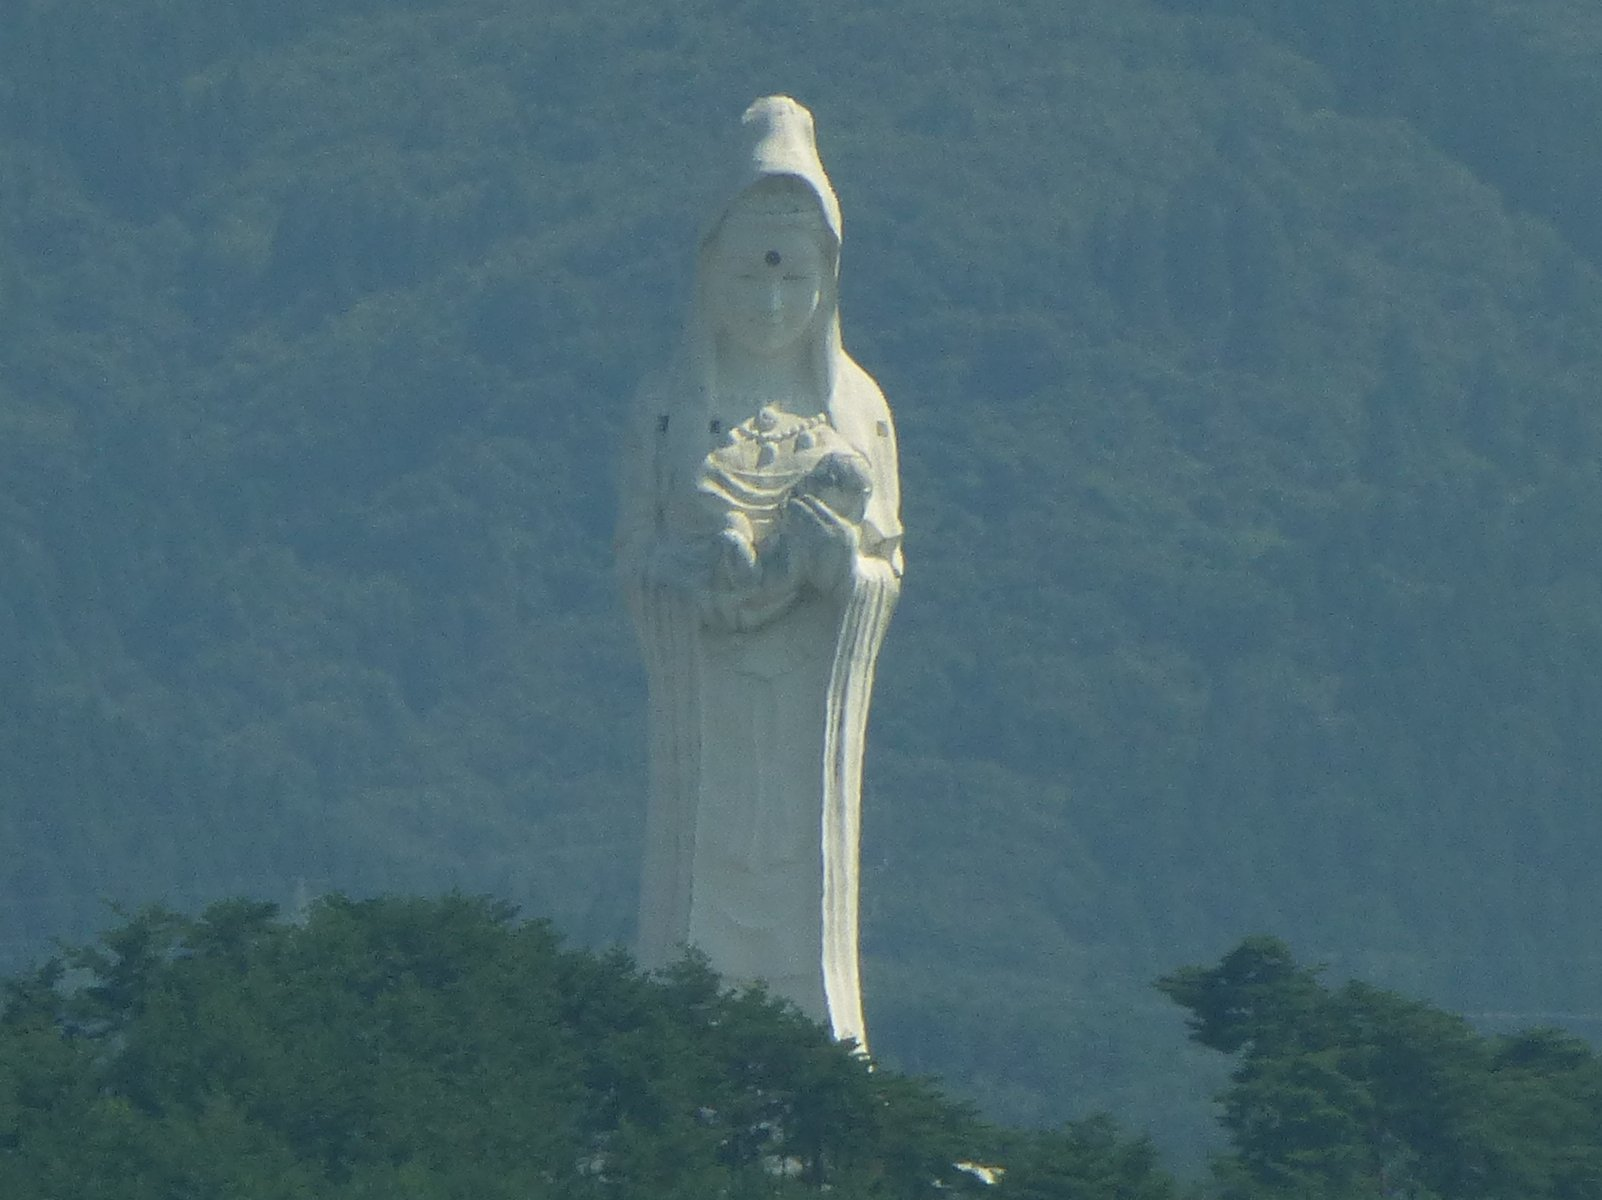 A white statue of a standing kannon.